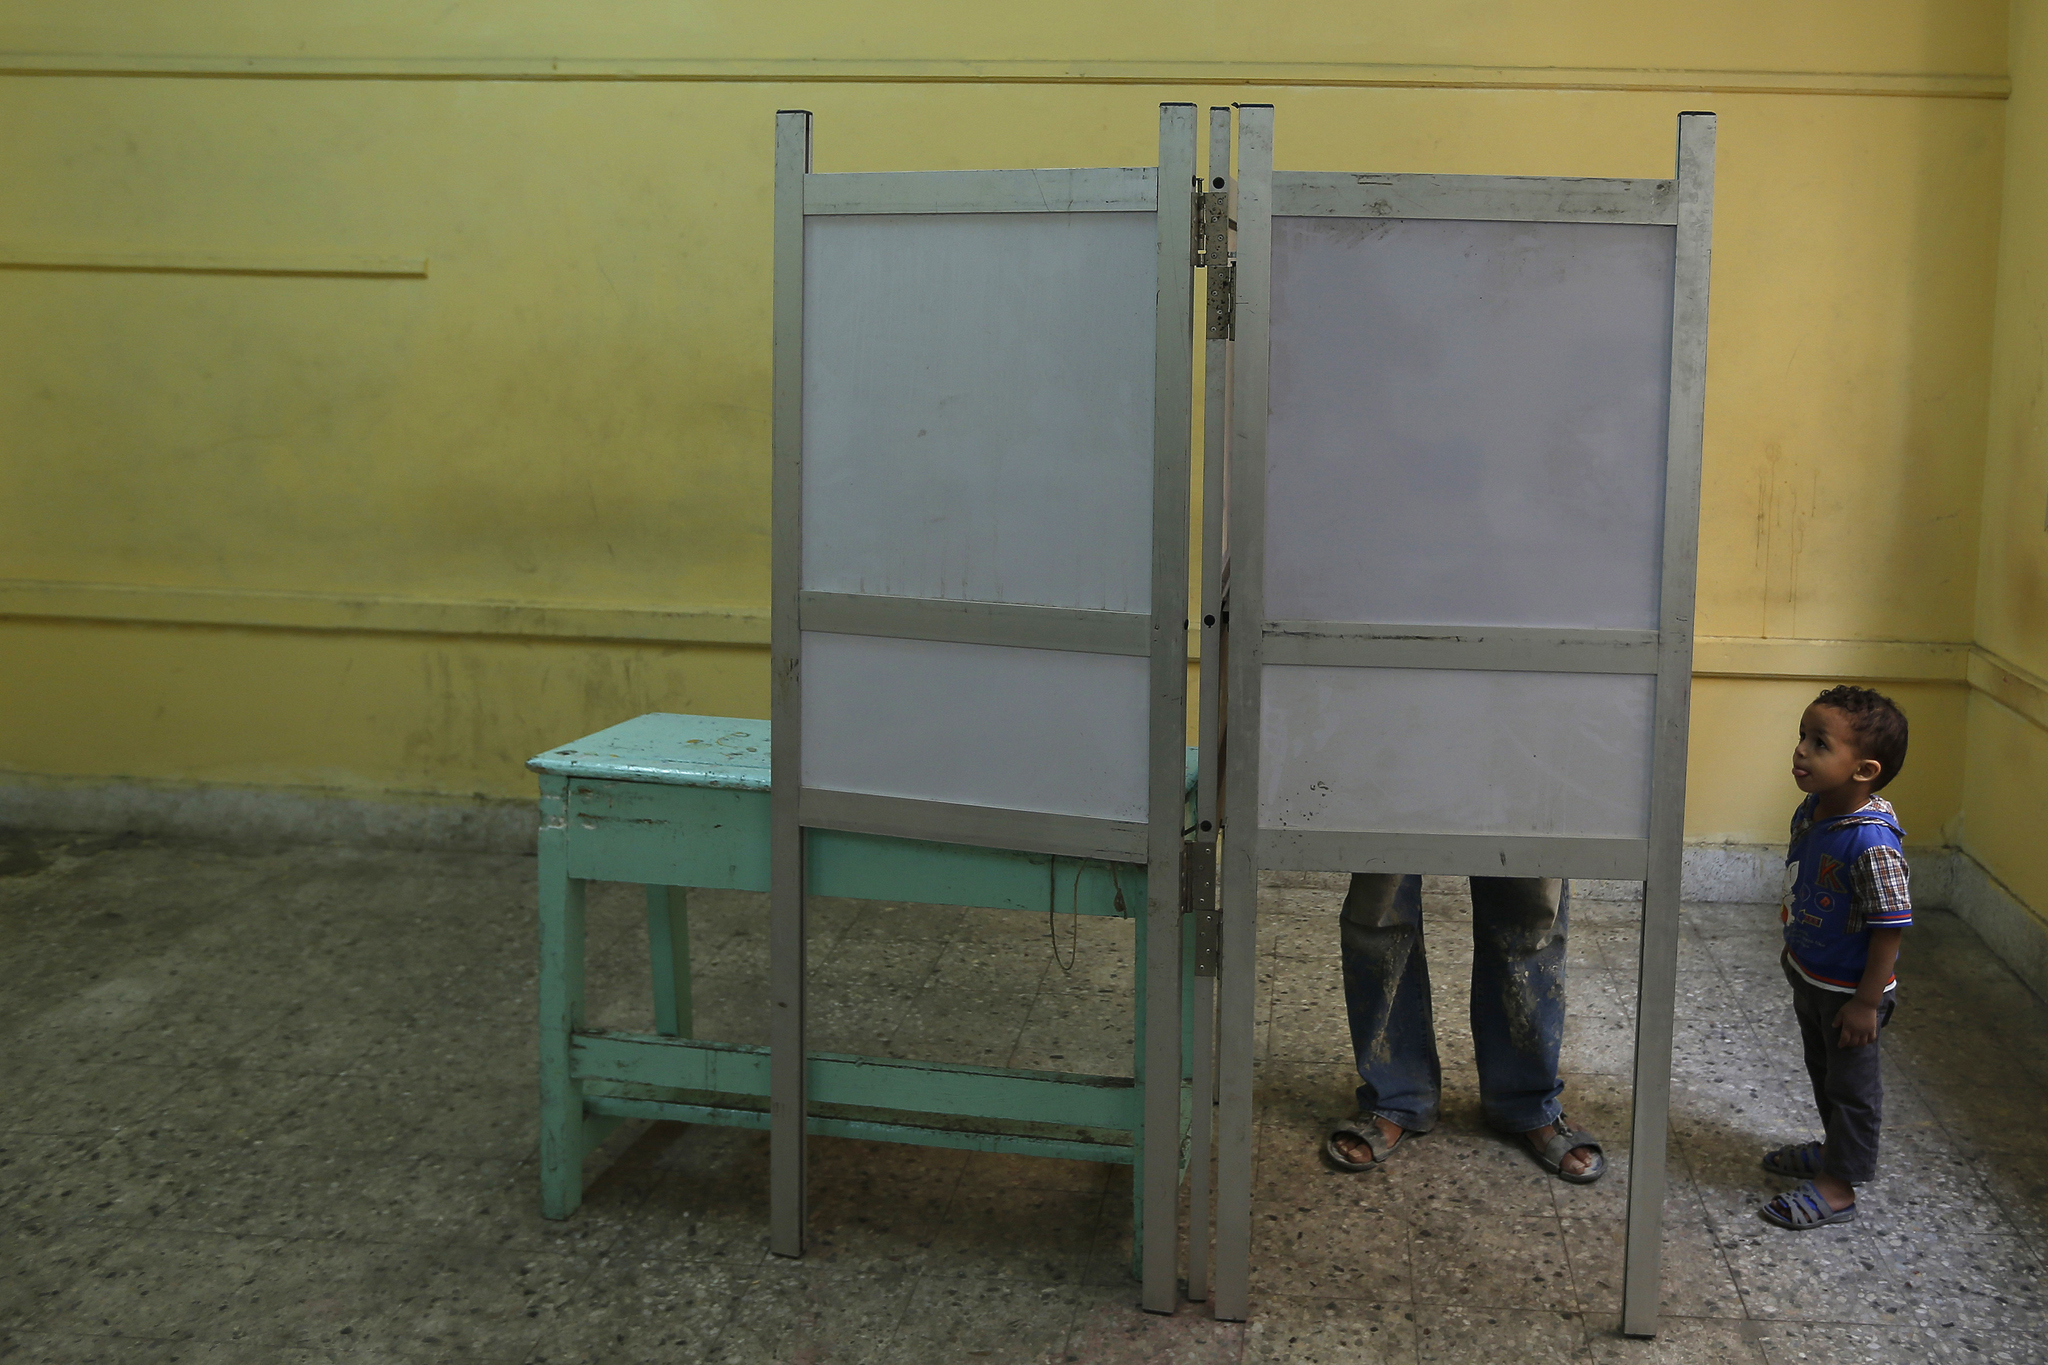 An Egyptian boy watches his father mark his ballot during the final day of the first round of the Egyptian parliamentary elections, at a polling station in Alexandria, Egypt, Sunday, Monday, Oct. 19, 2015. Egyptian authorities have given government workers a half-day off Monday in an attempt to bolster low turnout in the country's parliamentary election. The government has not released turnout figures for voting on Sunday. (AP Photo/Hassan Ammar)